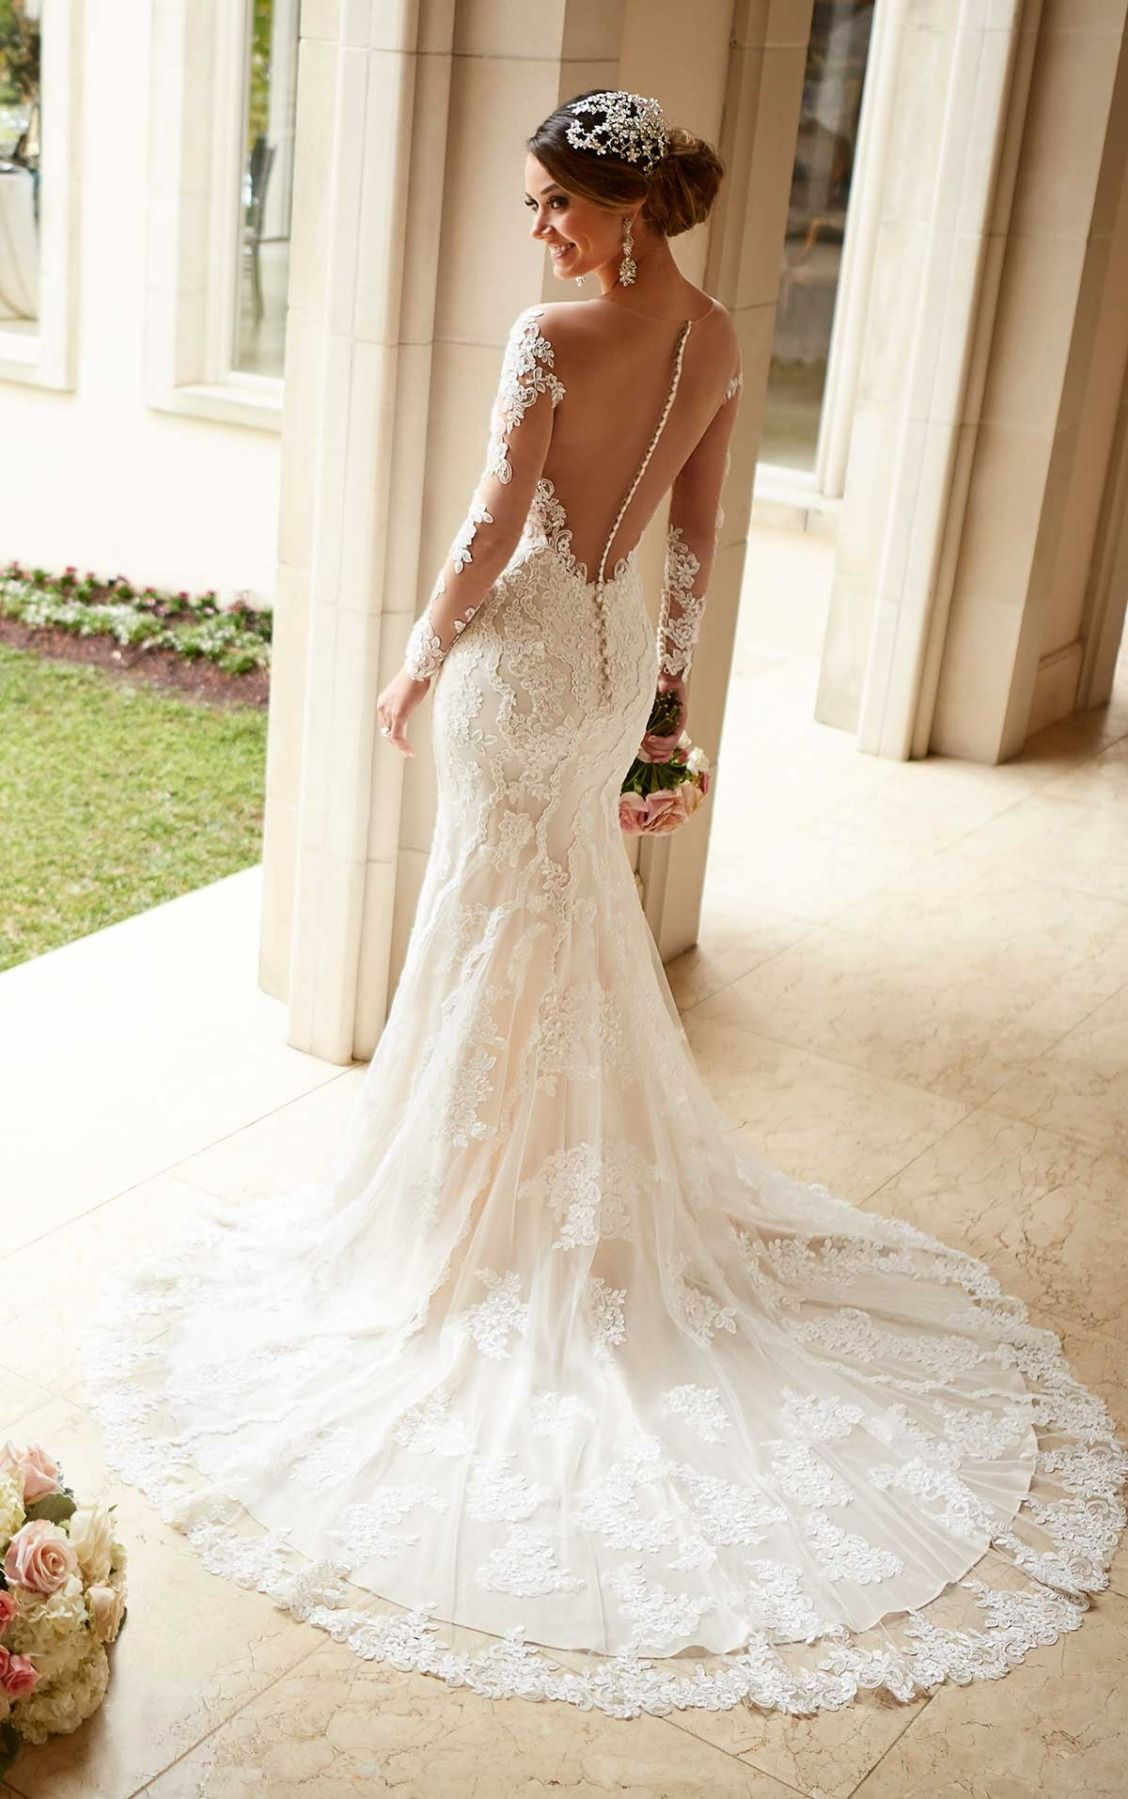 Wedding Dresses With Illusion Lace Sleeves Stella York Long Sleeve Wedding Dress Lace Stella York Wedding Dress Wedding Dress Long Sleeve